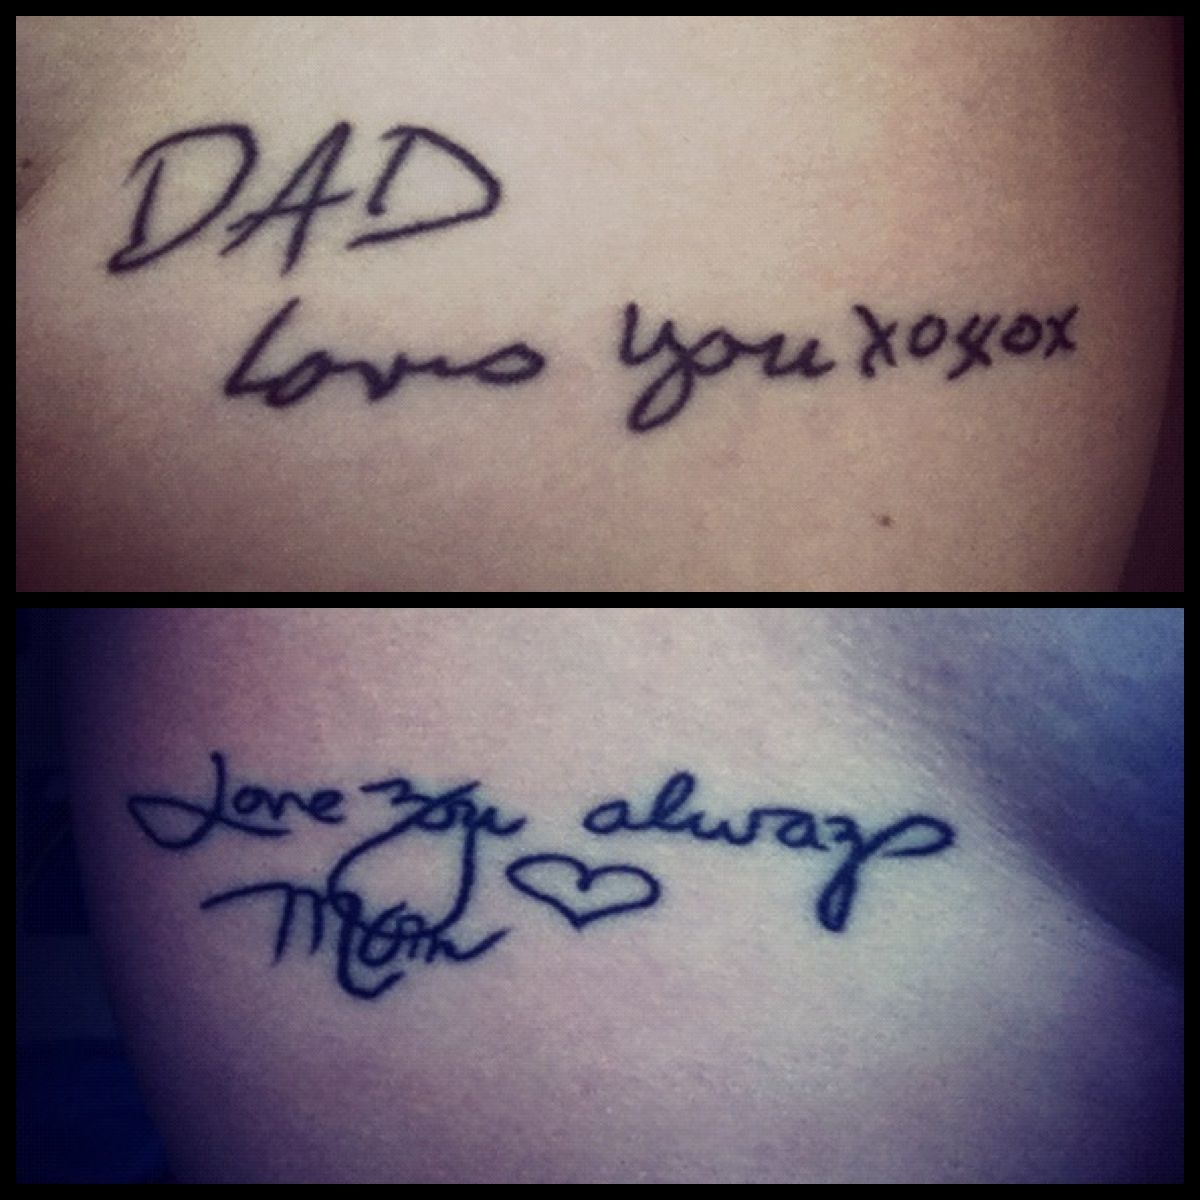 This would be a memorable tattoo a girl got her parents